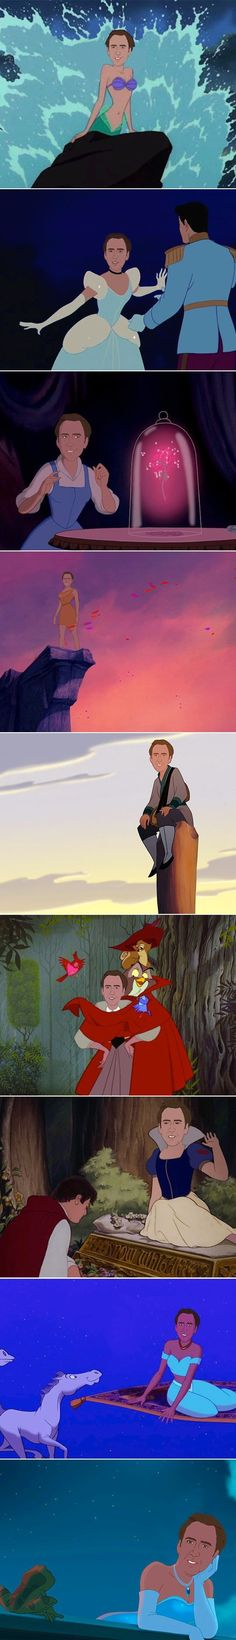 Nic Cage starring as the Disney princesses